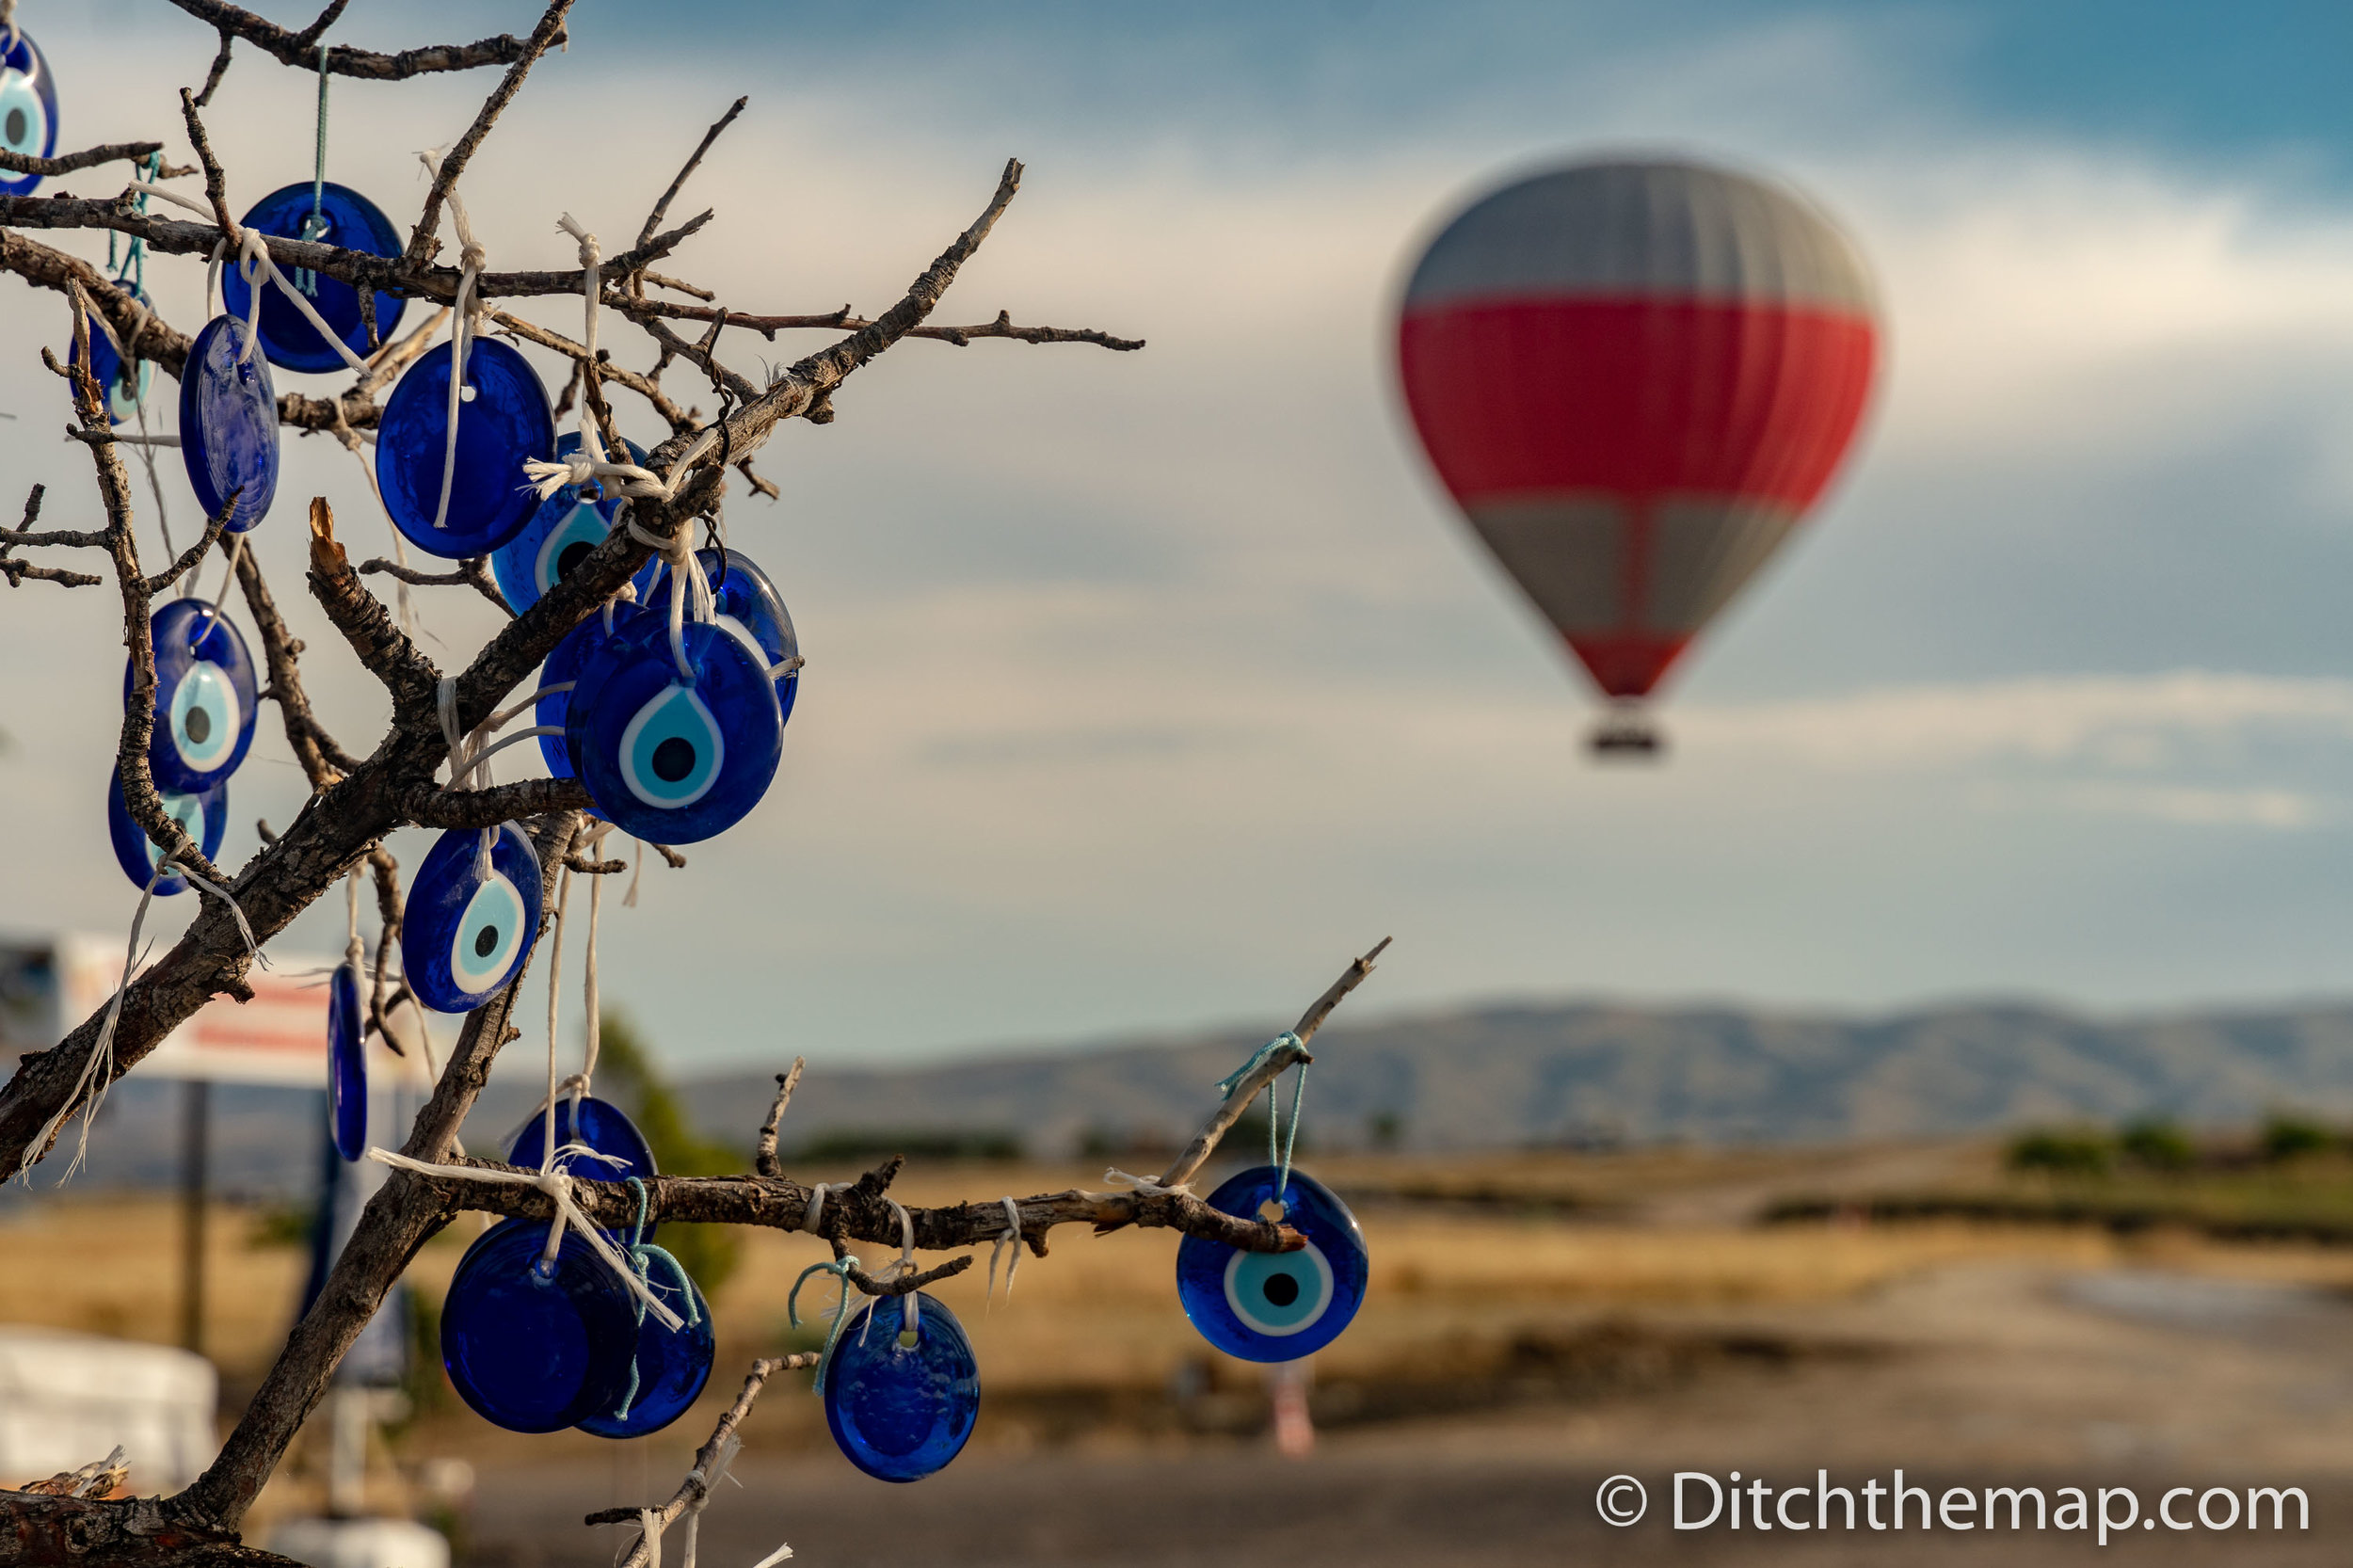 Evil Eye Tree with Hot Air Balloon in Bckground